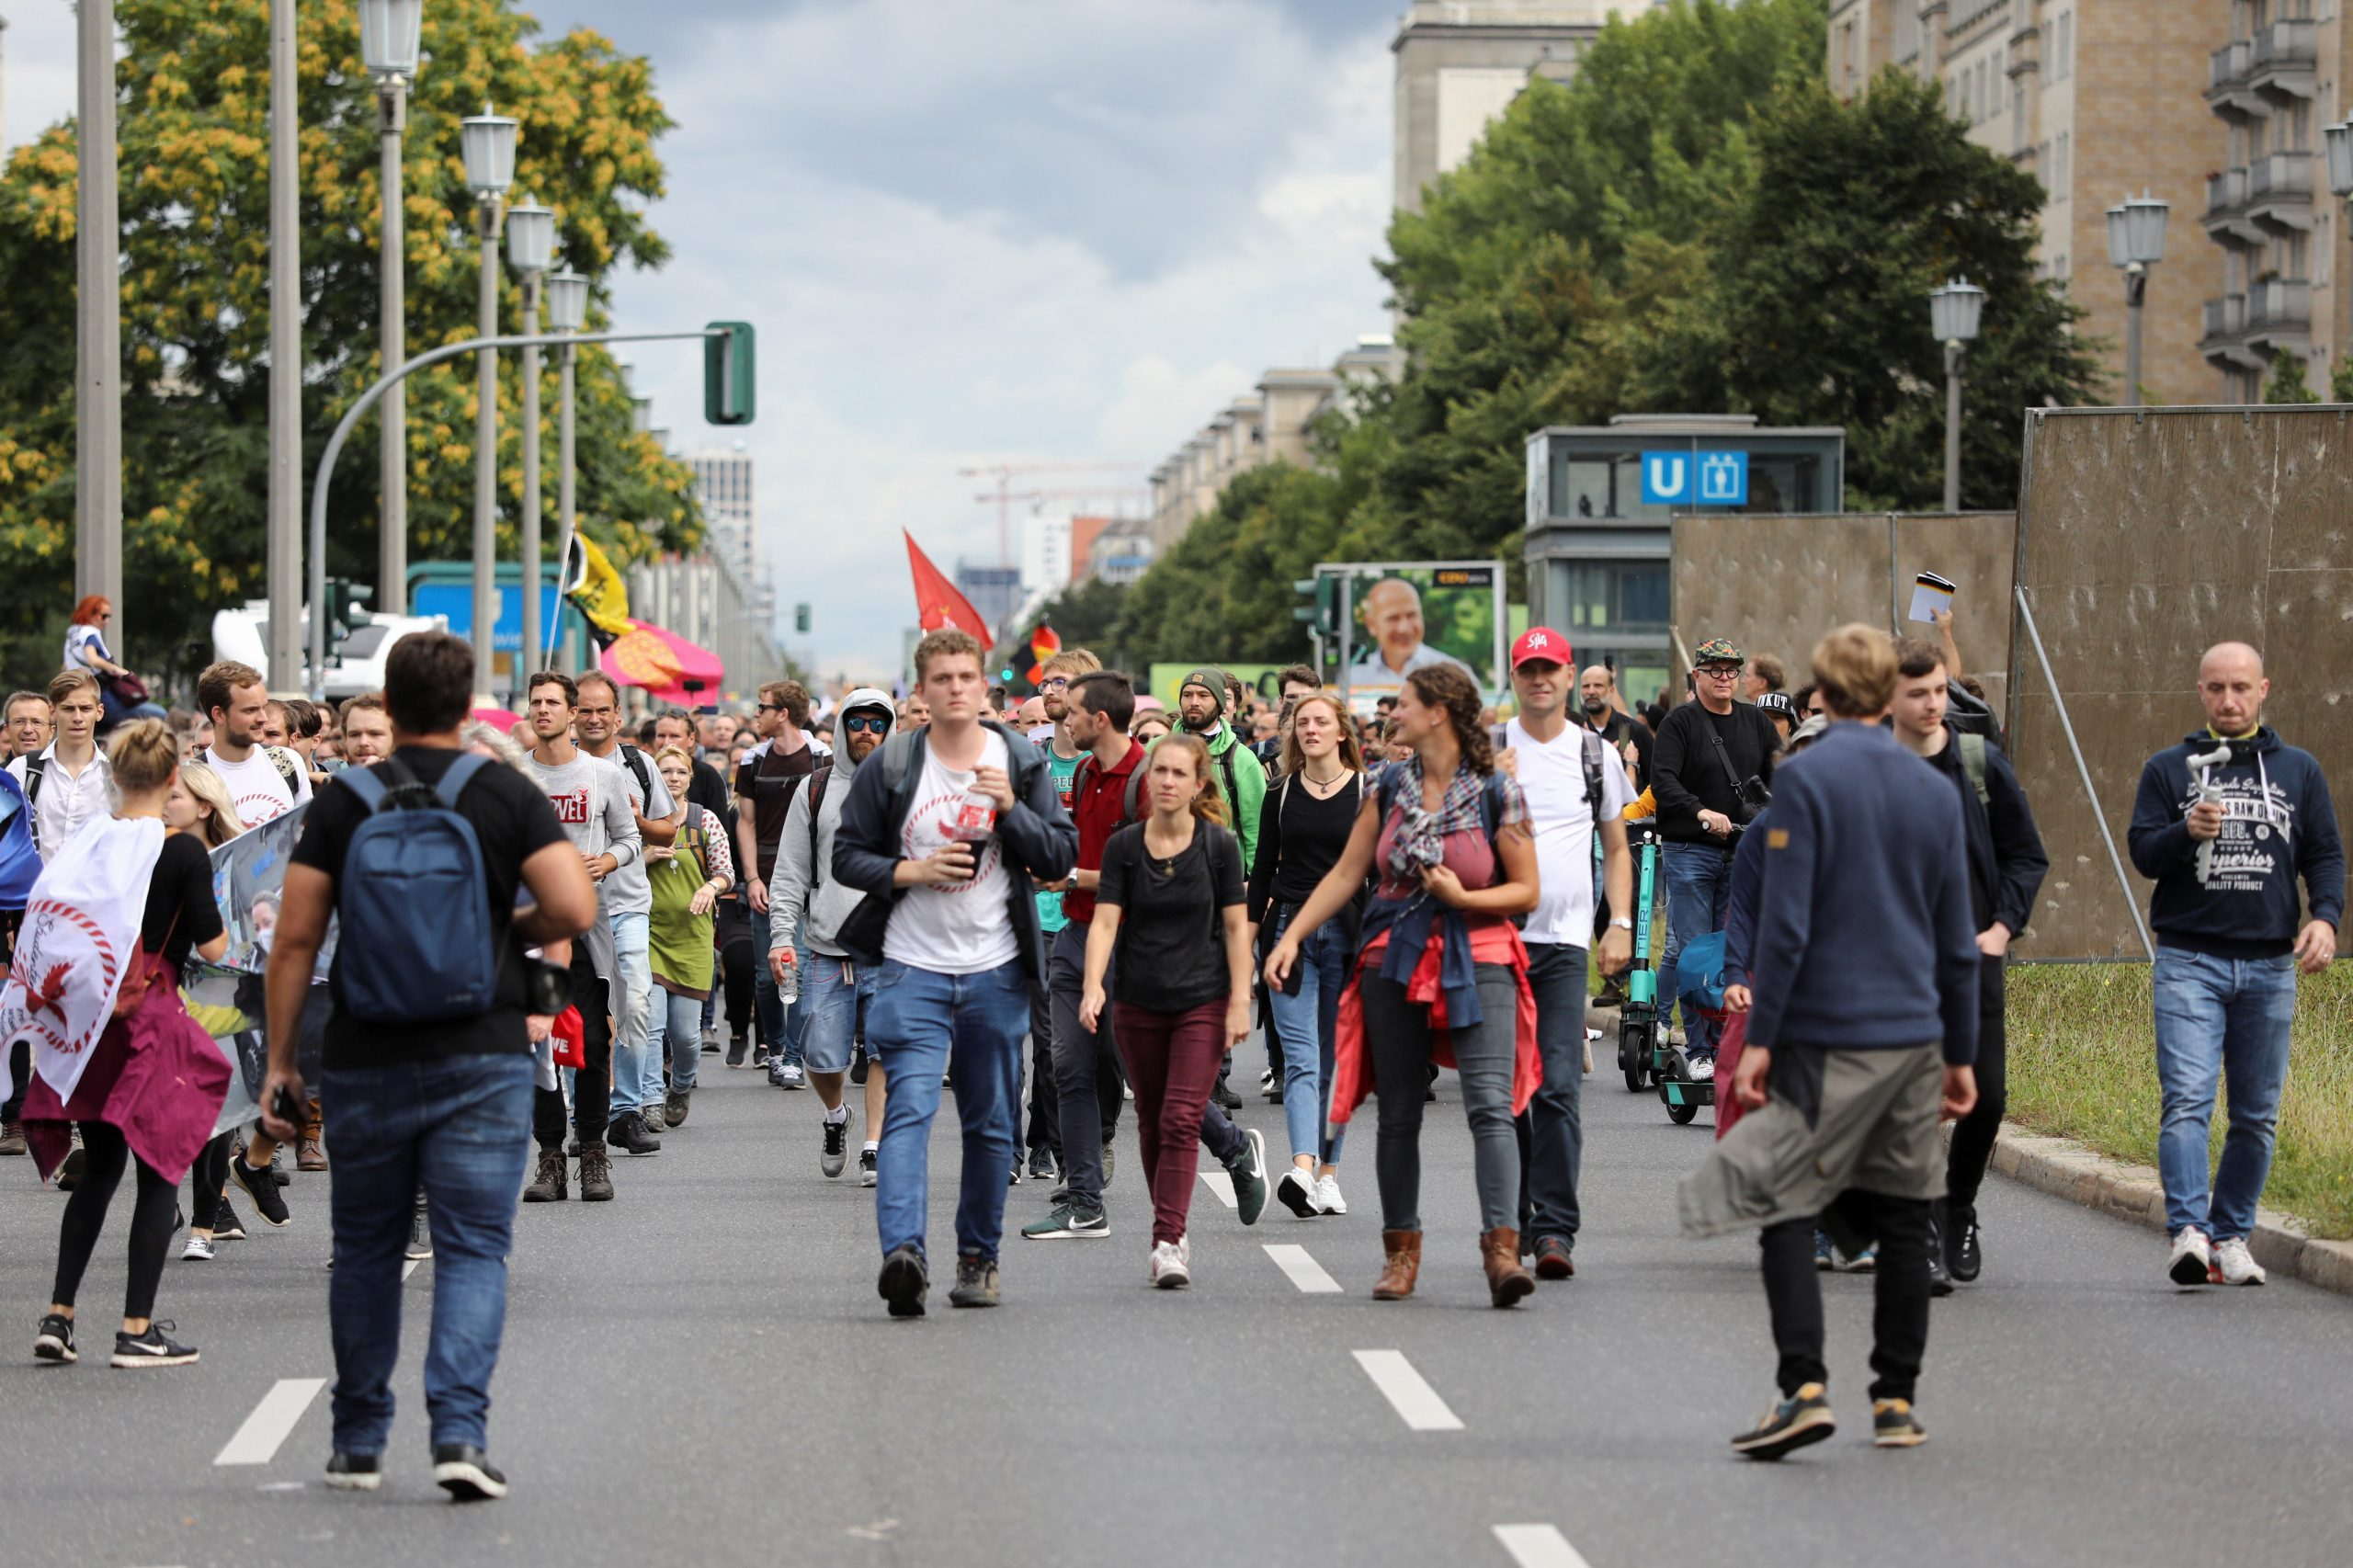 Thousands protest in Berlin against COVID curbs, vaccines